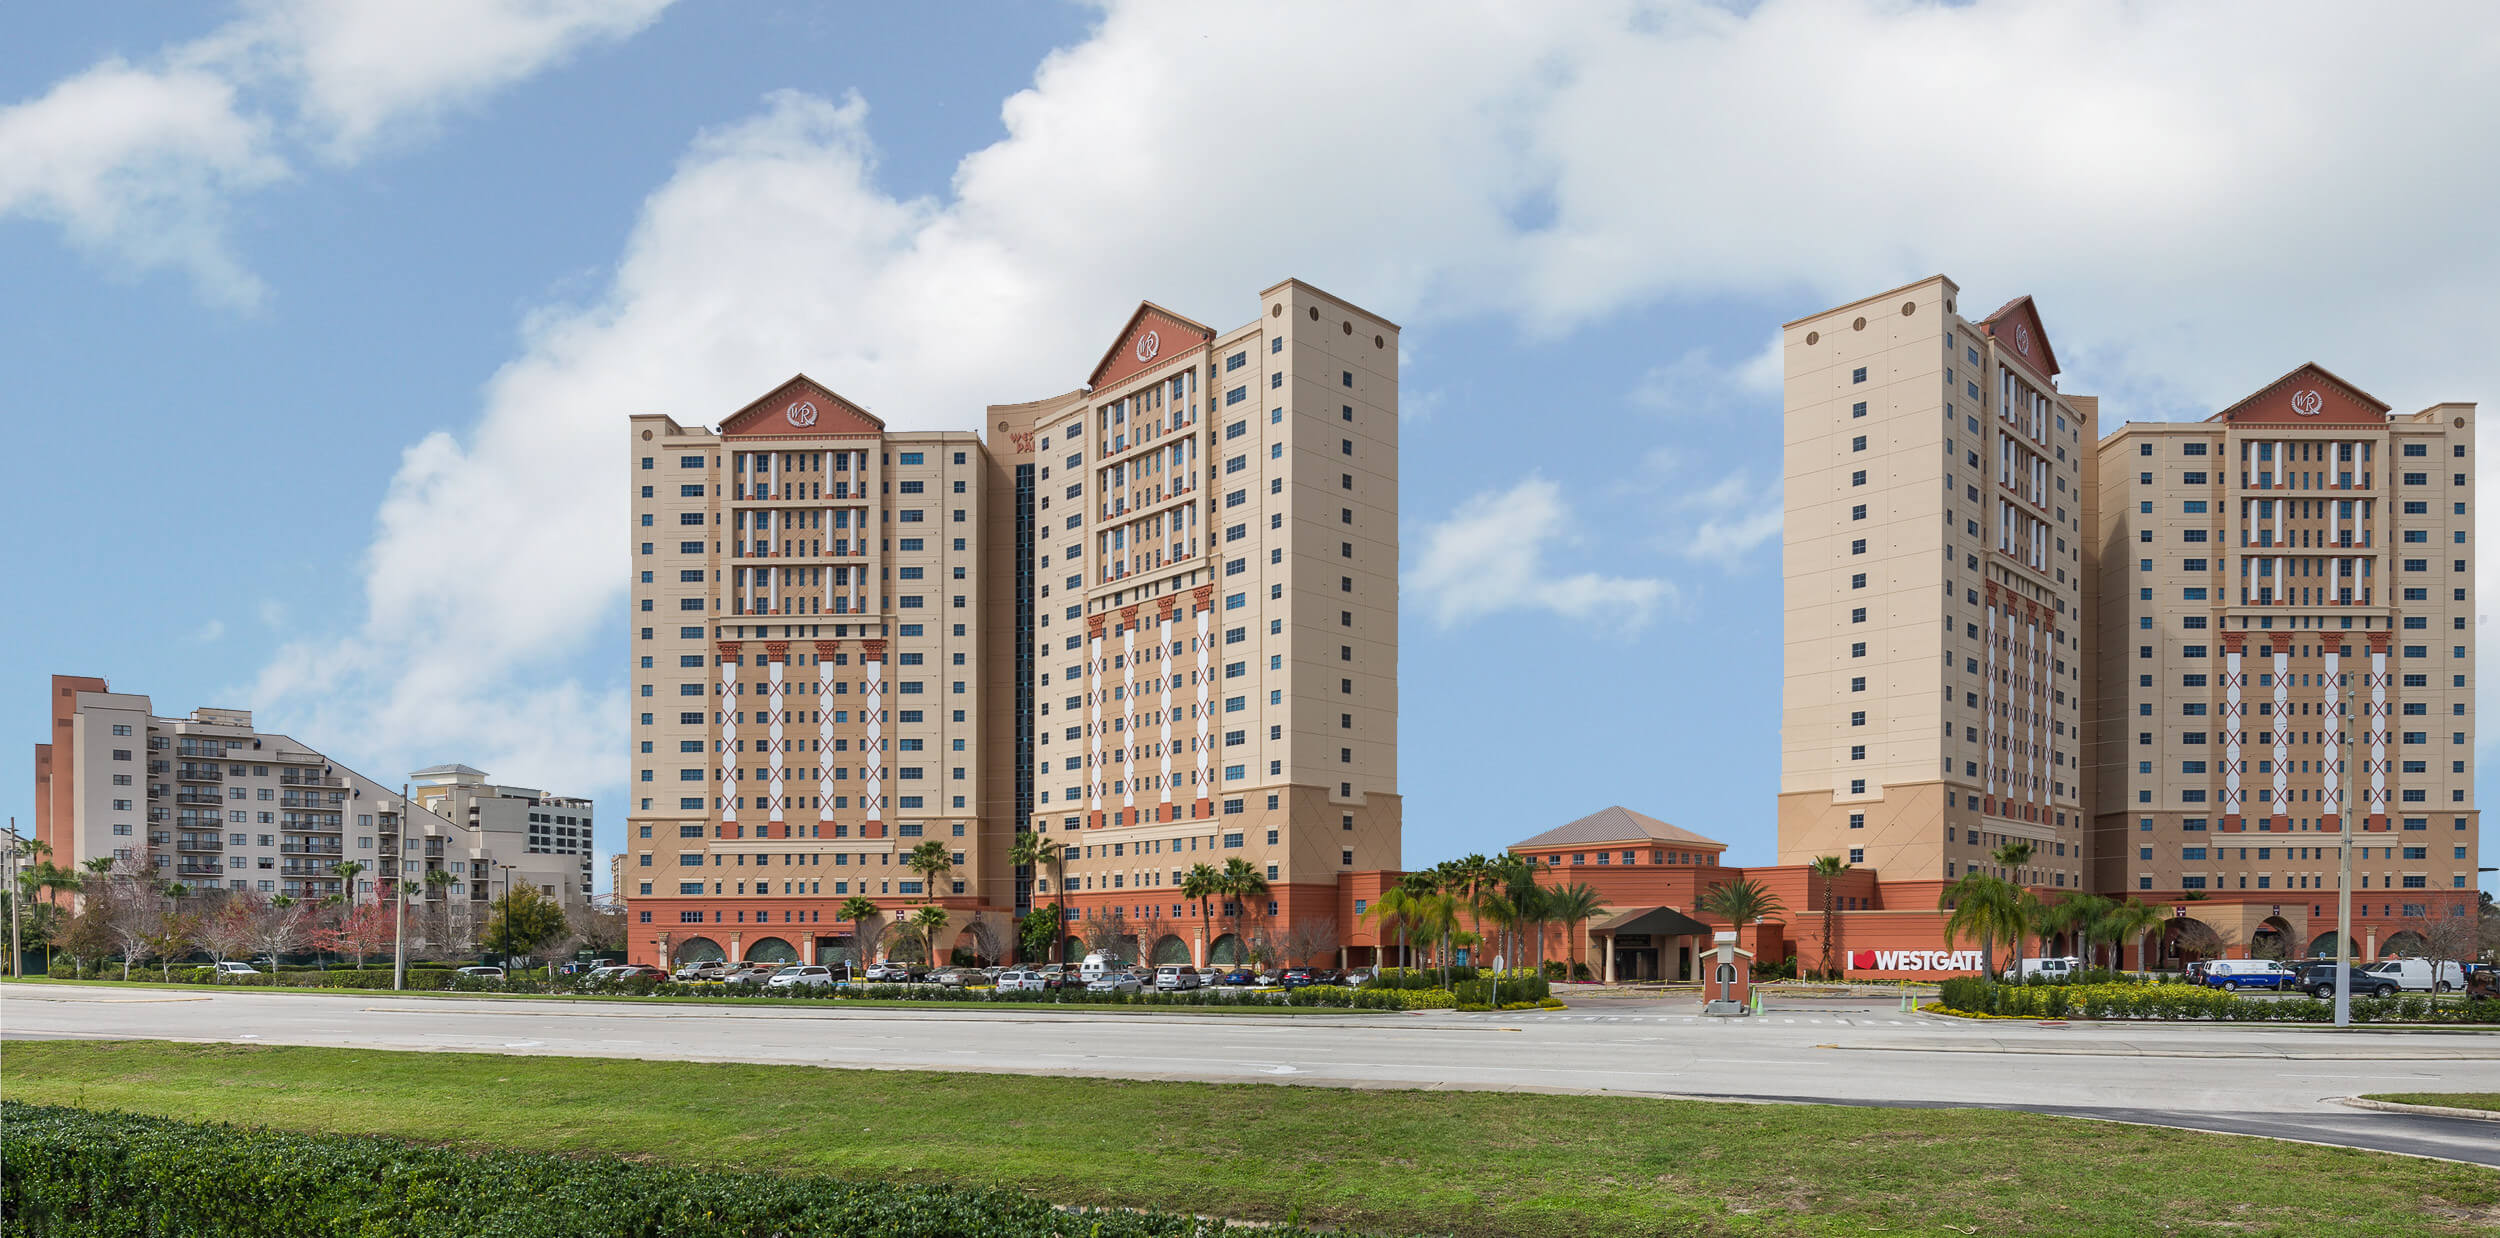 Two-Tower Lakeside Resort just off International Drive | Westgate Palace Resort